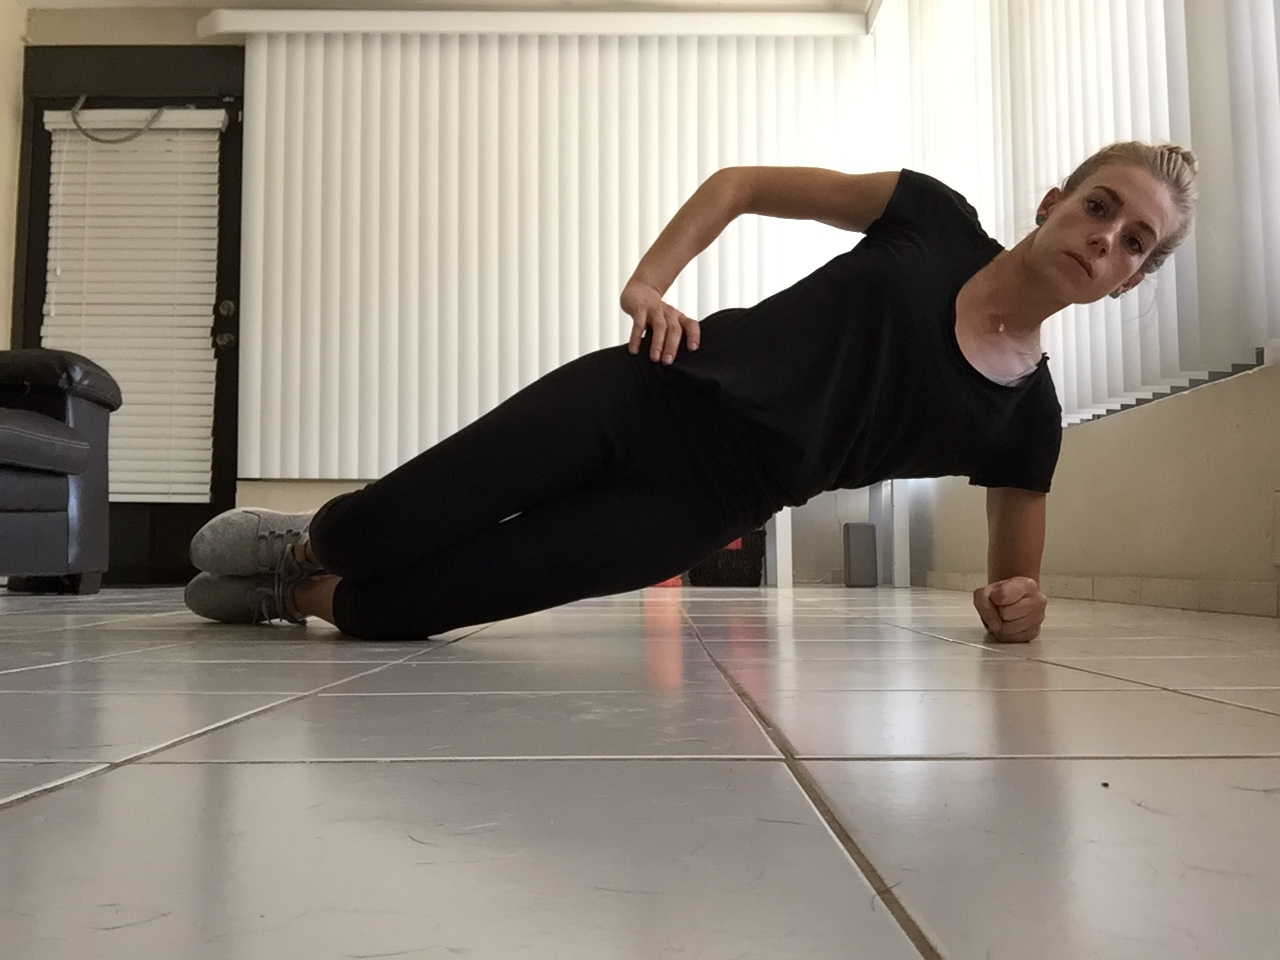 Side Plank on Knees: Elbow directly under shoulder, neck is relaxed and neutral, eyes looking fwd.